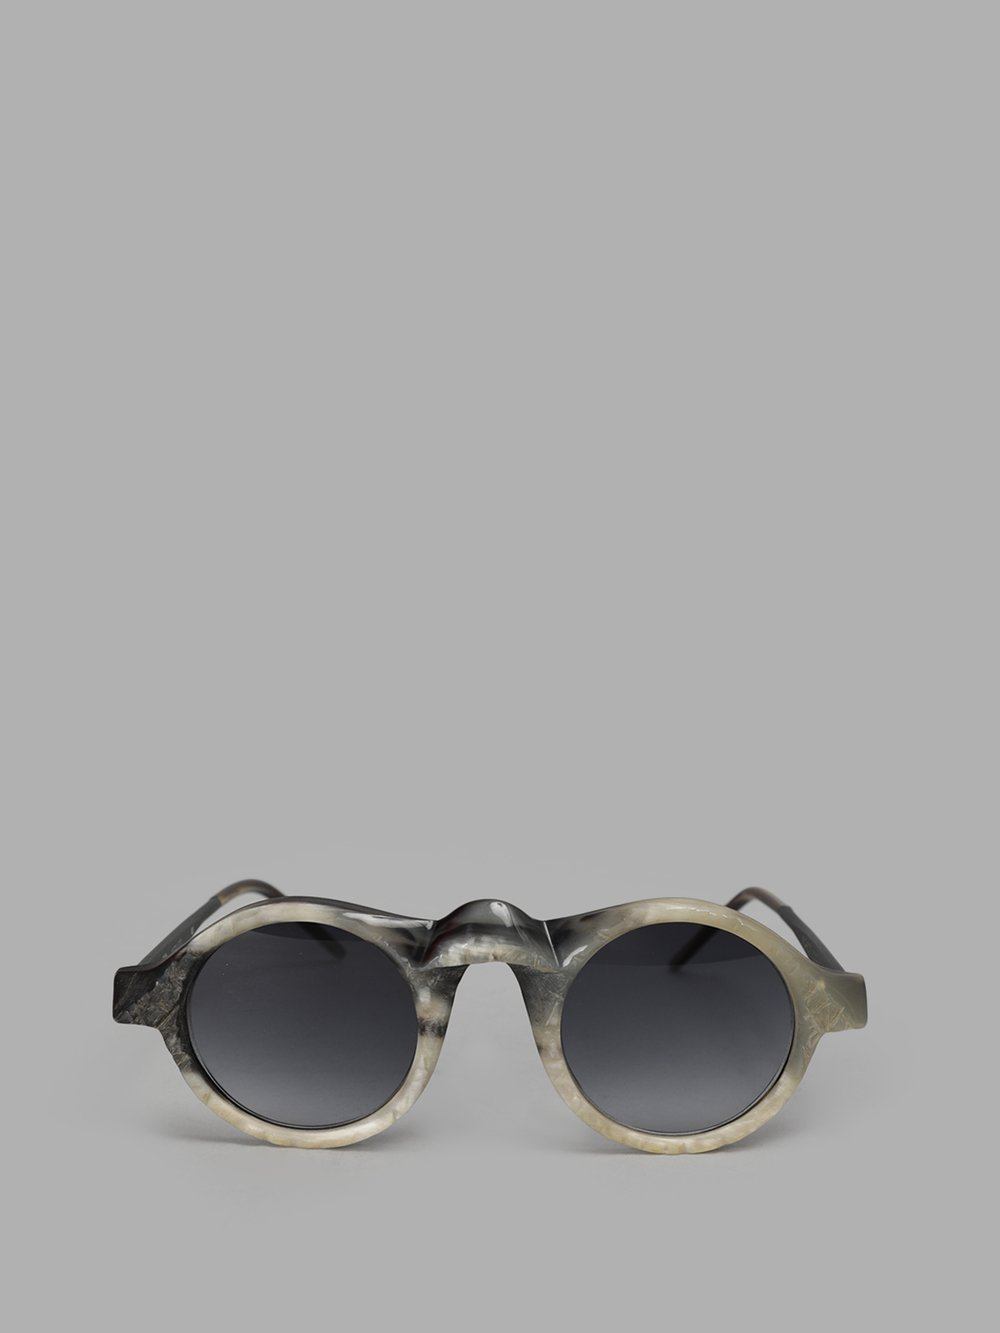 8d881d403de Rigards - Eyewear - Antonioli.eu